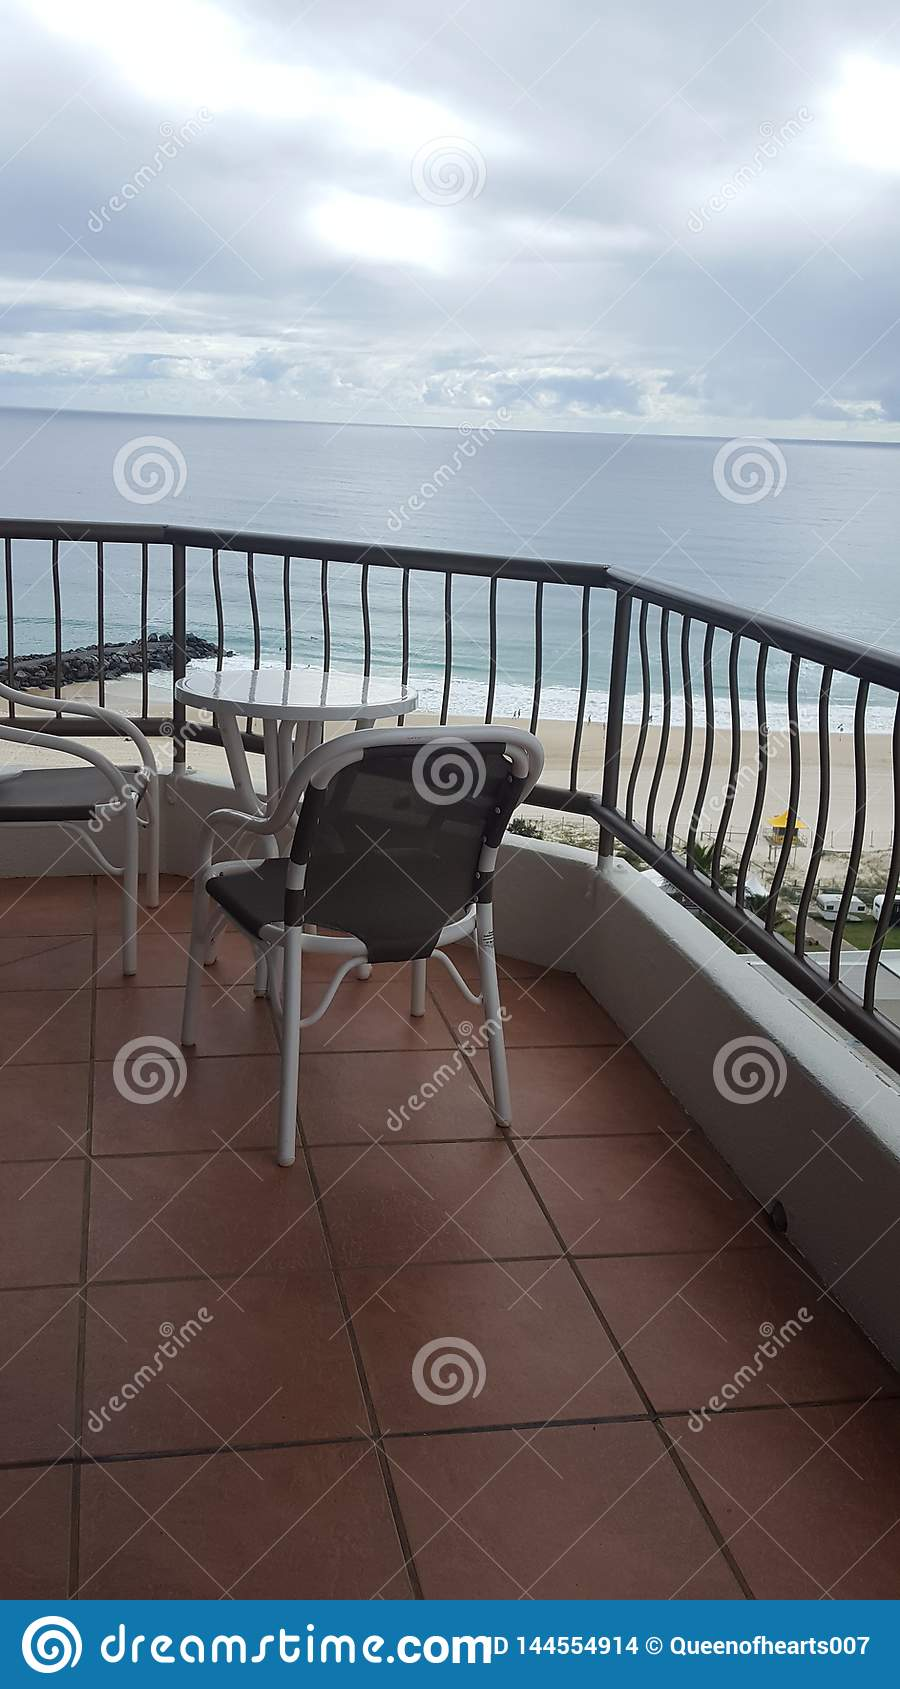 Coolangatta - Panoramic view from the balcony of a luxurious apartment, the Beach House, Coolangatta, Queensland, Australia